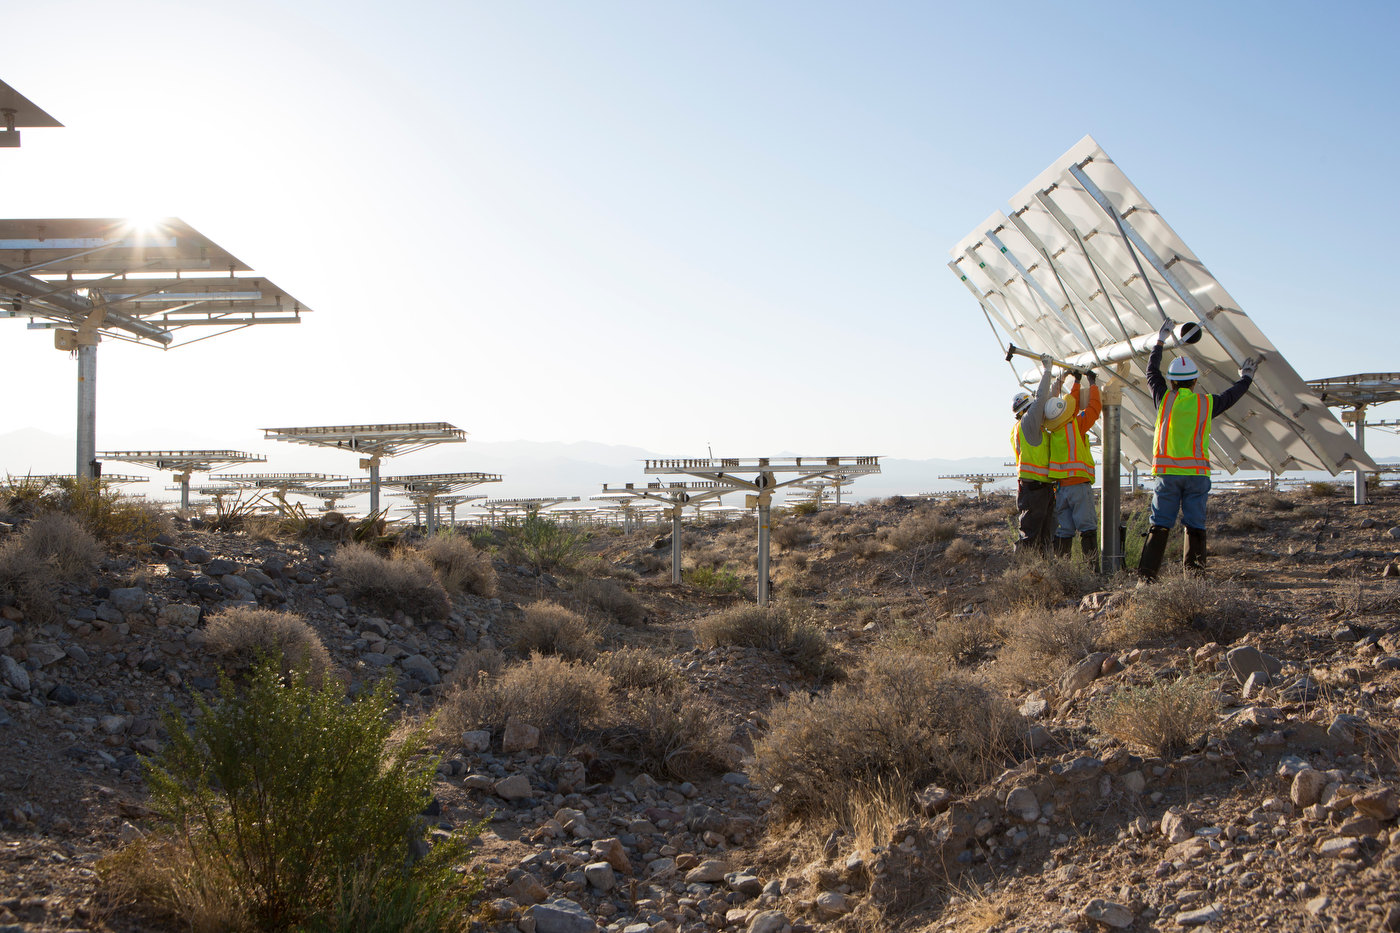 IVANPAH; CALIFORNIA; MAY 2012: A crew flips a heliostat to its stowed position near Tower One at sunrise at the Ivanpah Solar Project (photo Gilles Mingasson/Getty Images for Bechtel).